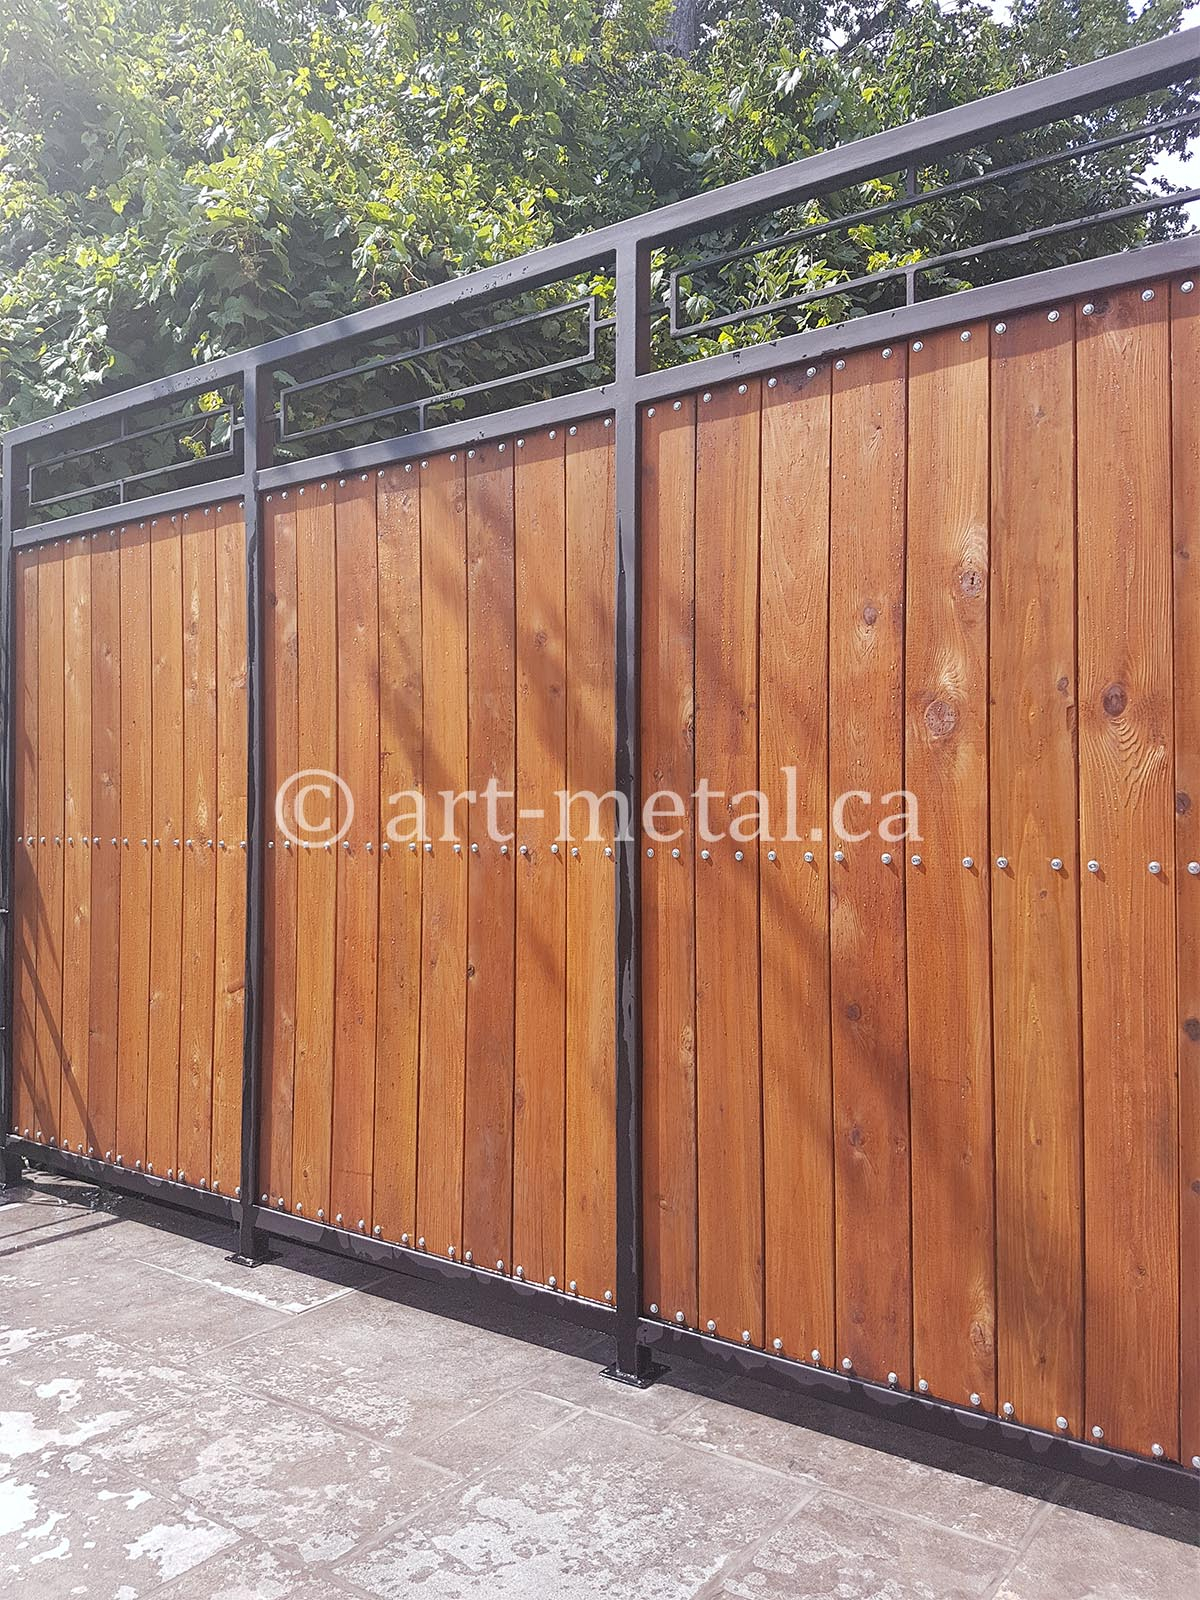 Buy Strong And Secure Gates For Backyard Fence In Toronto with regard to Gate For Backyard Fence